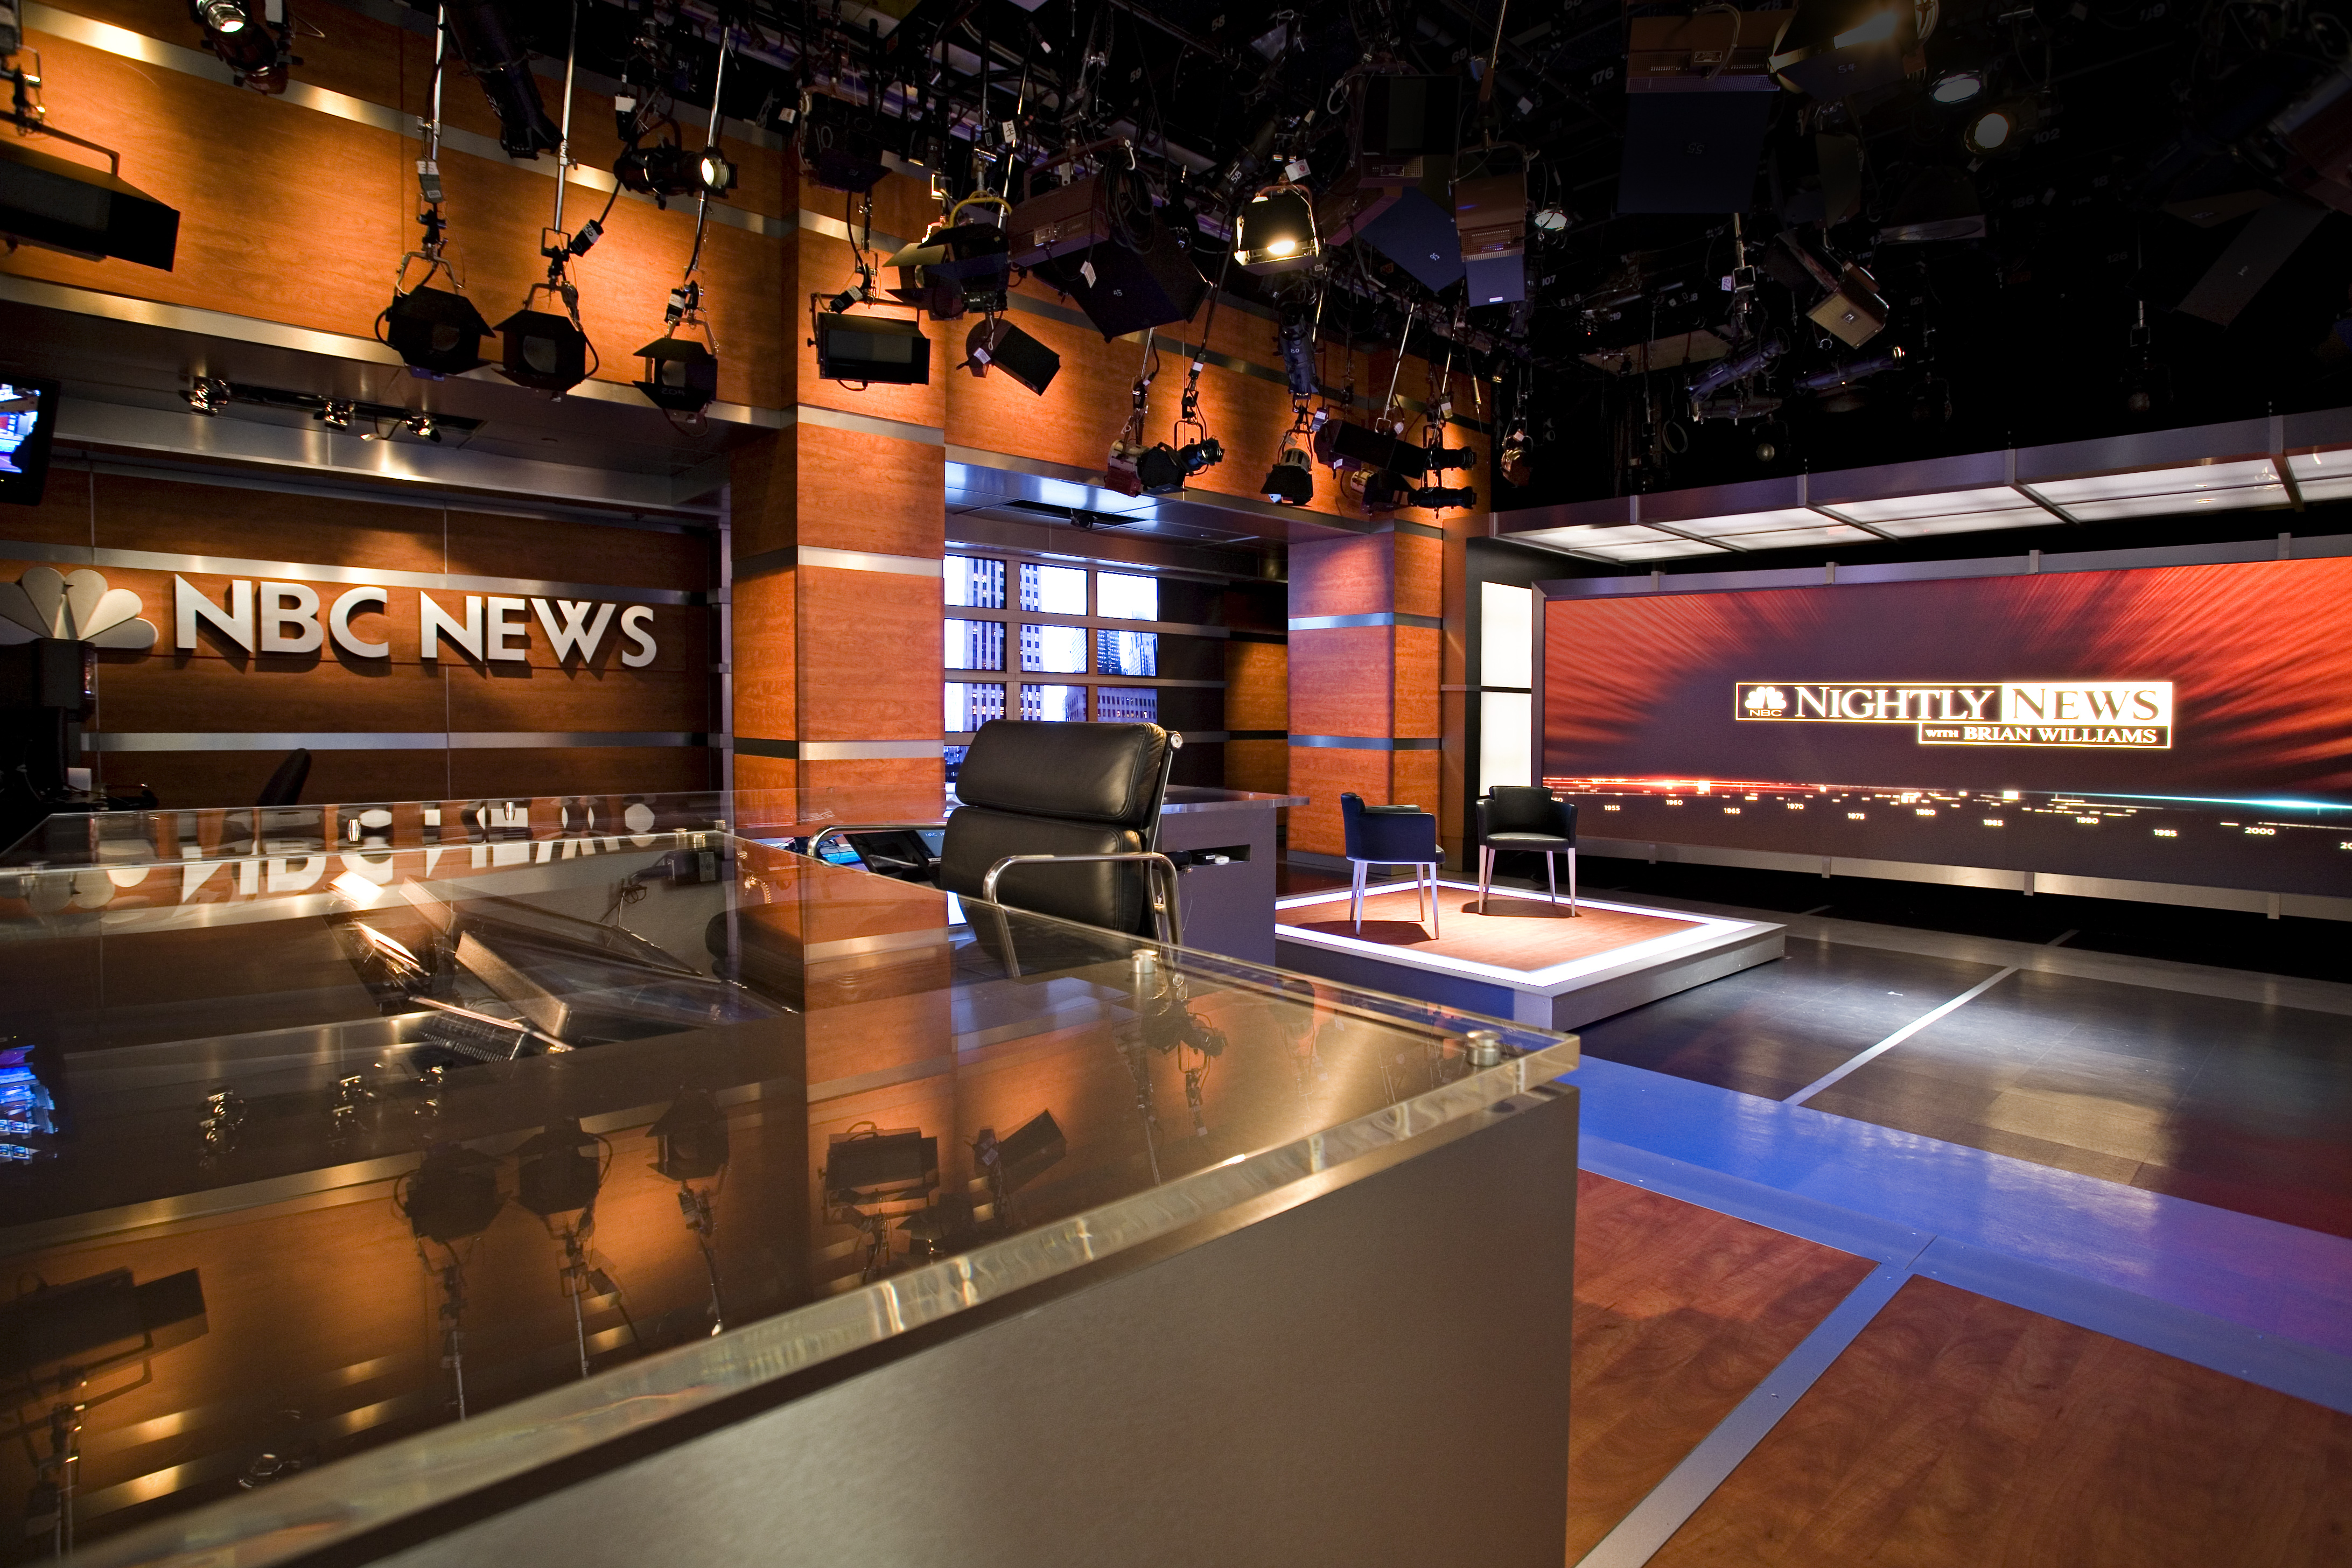 ncs_nbc-nightly-news-studio-3c-2007_0005